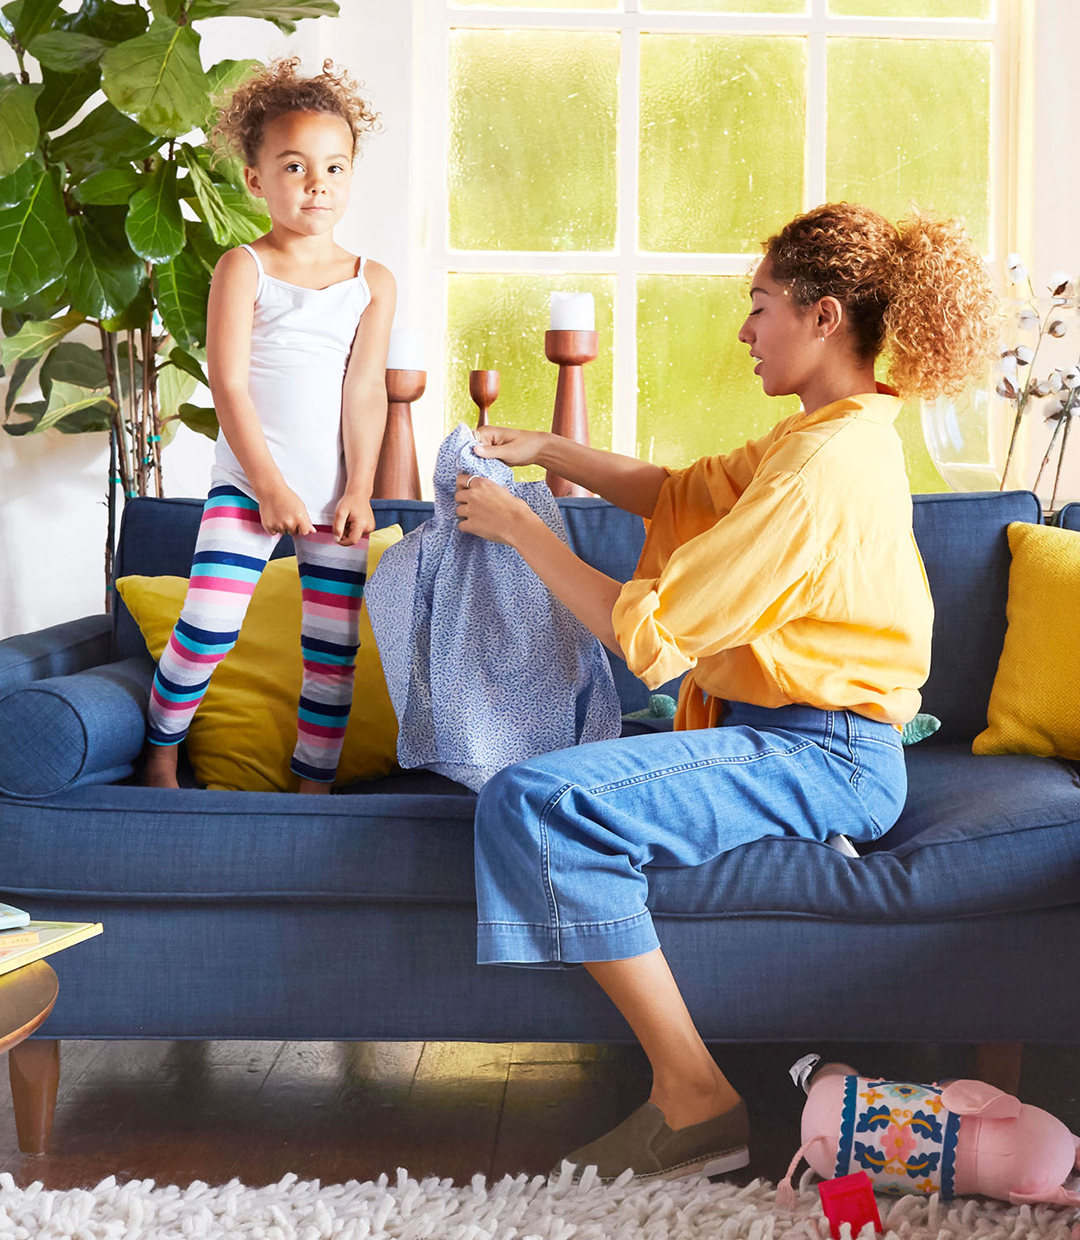 mom looking at daughter's shirt on couch